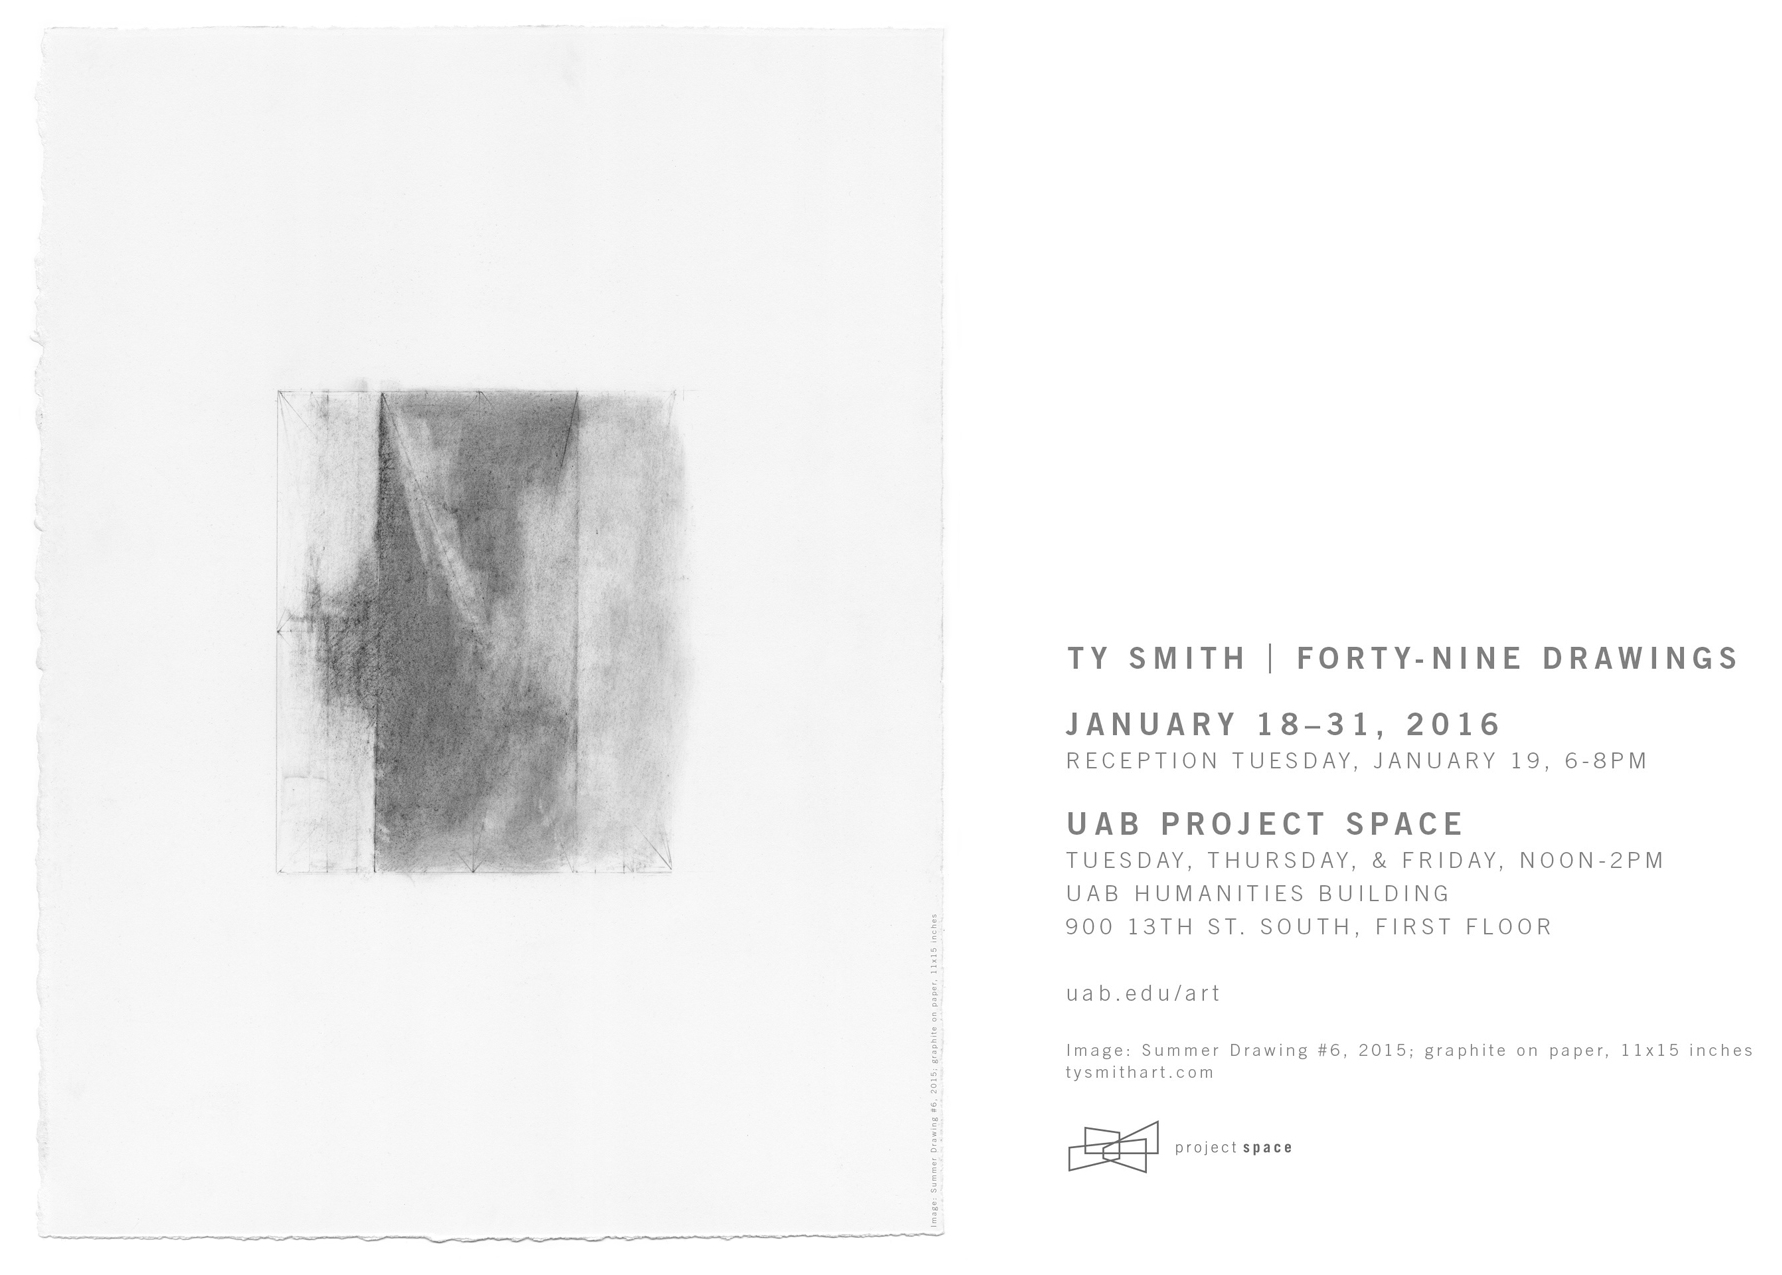 Ty Smith / Forty-Nine Drawings / UAB Project Space / January 18-31, 2016